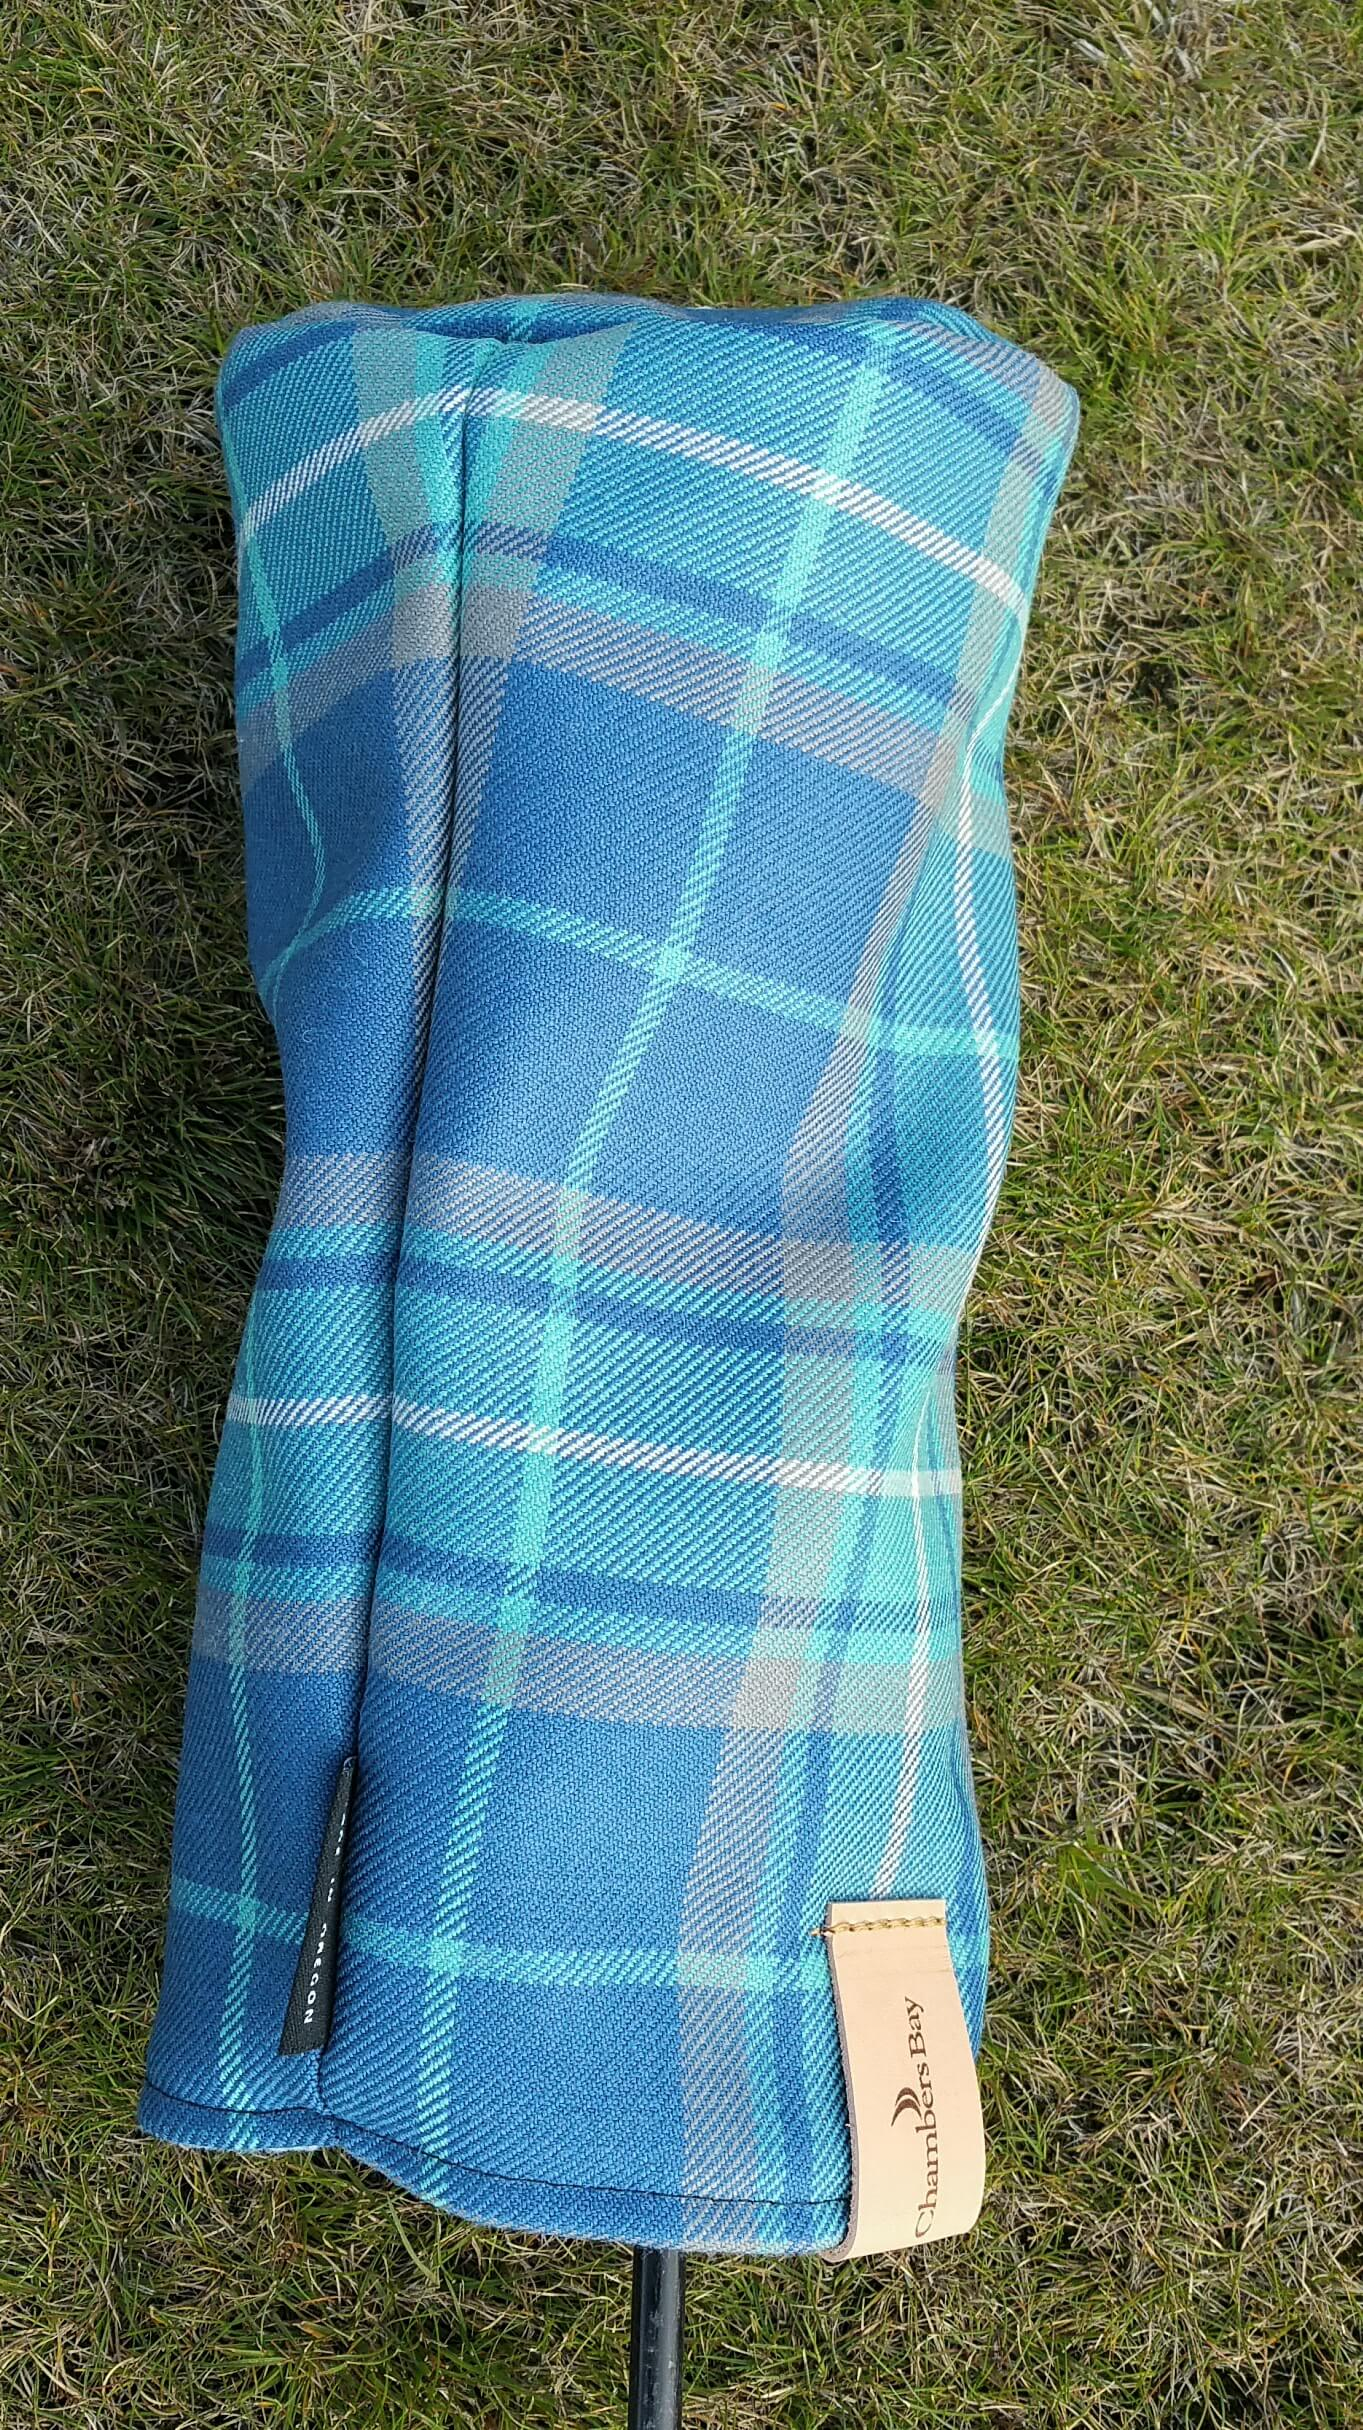 Fairway Wood Headcover - Chambers Bay Tartan